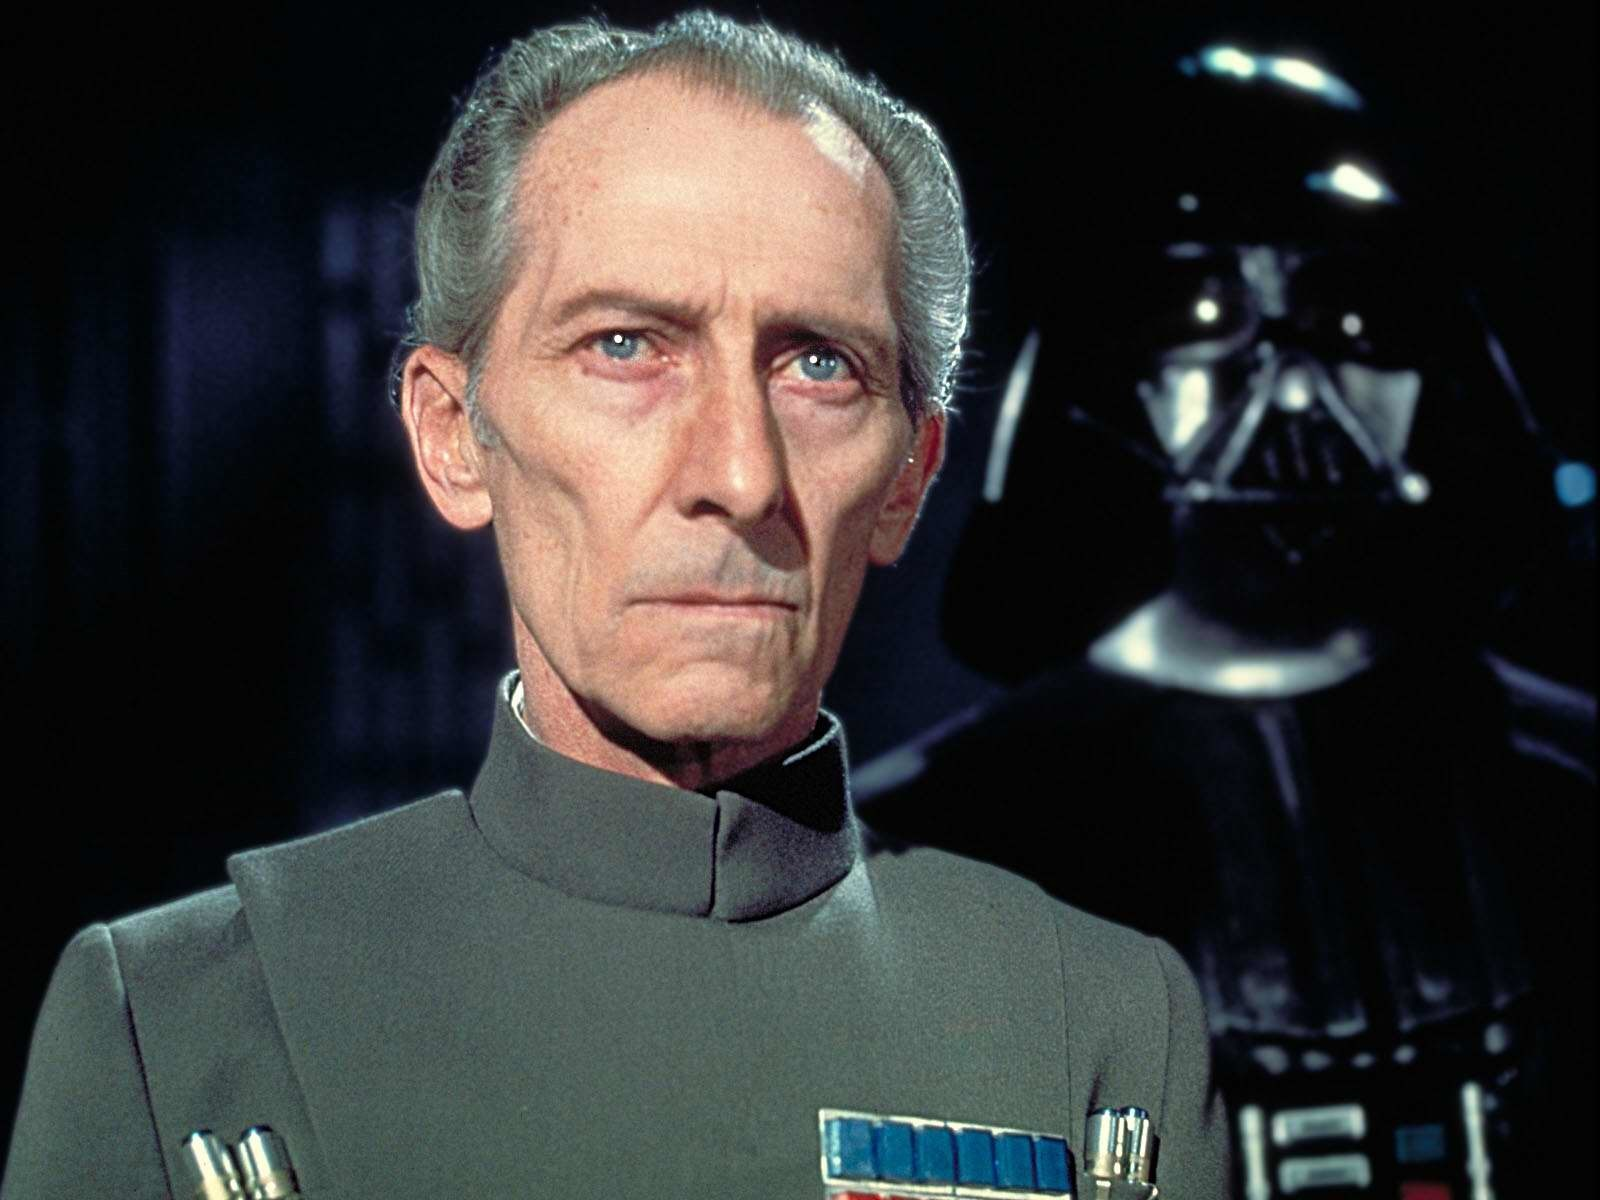 Moff Tarkin in Star Wars